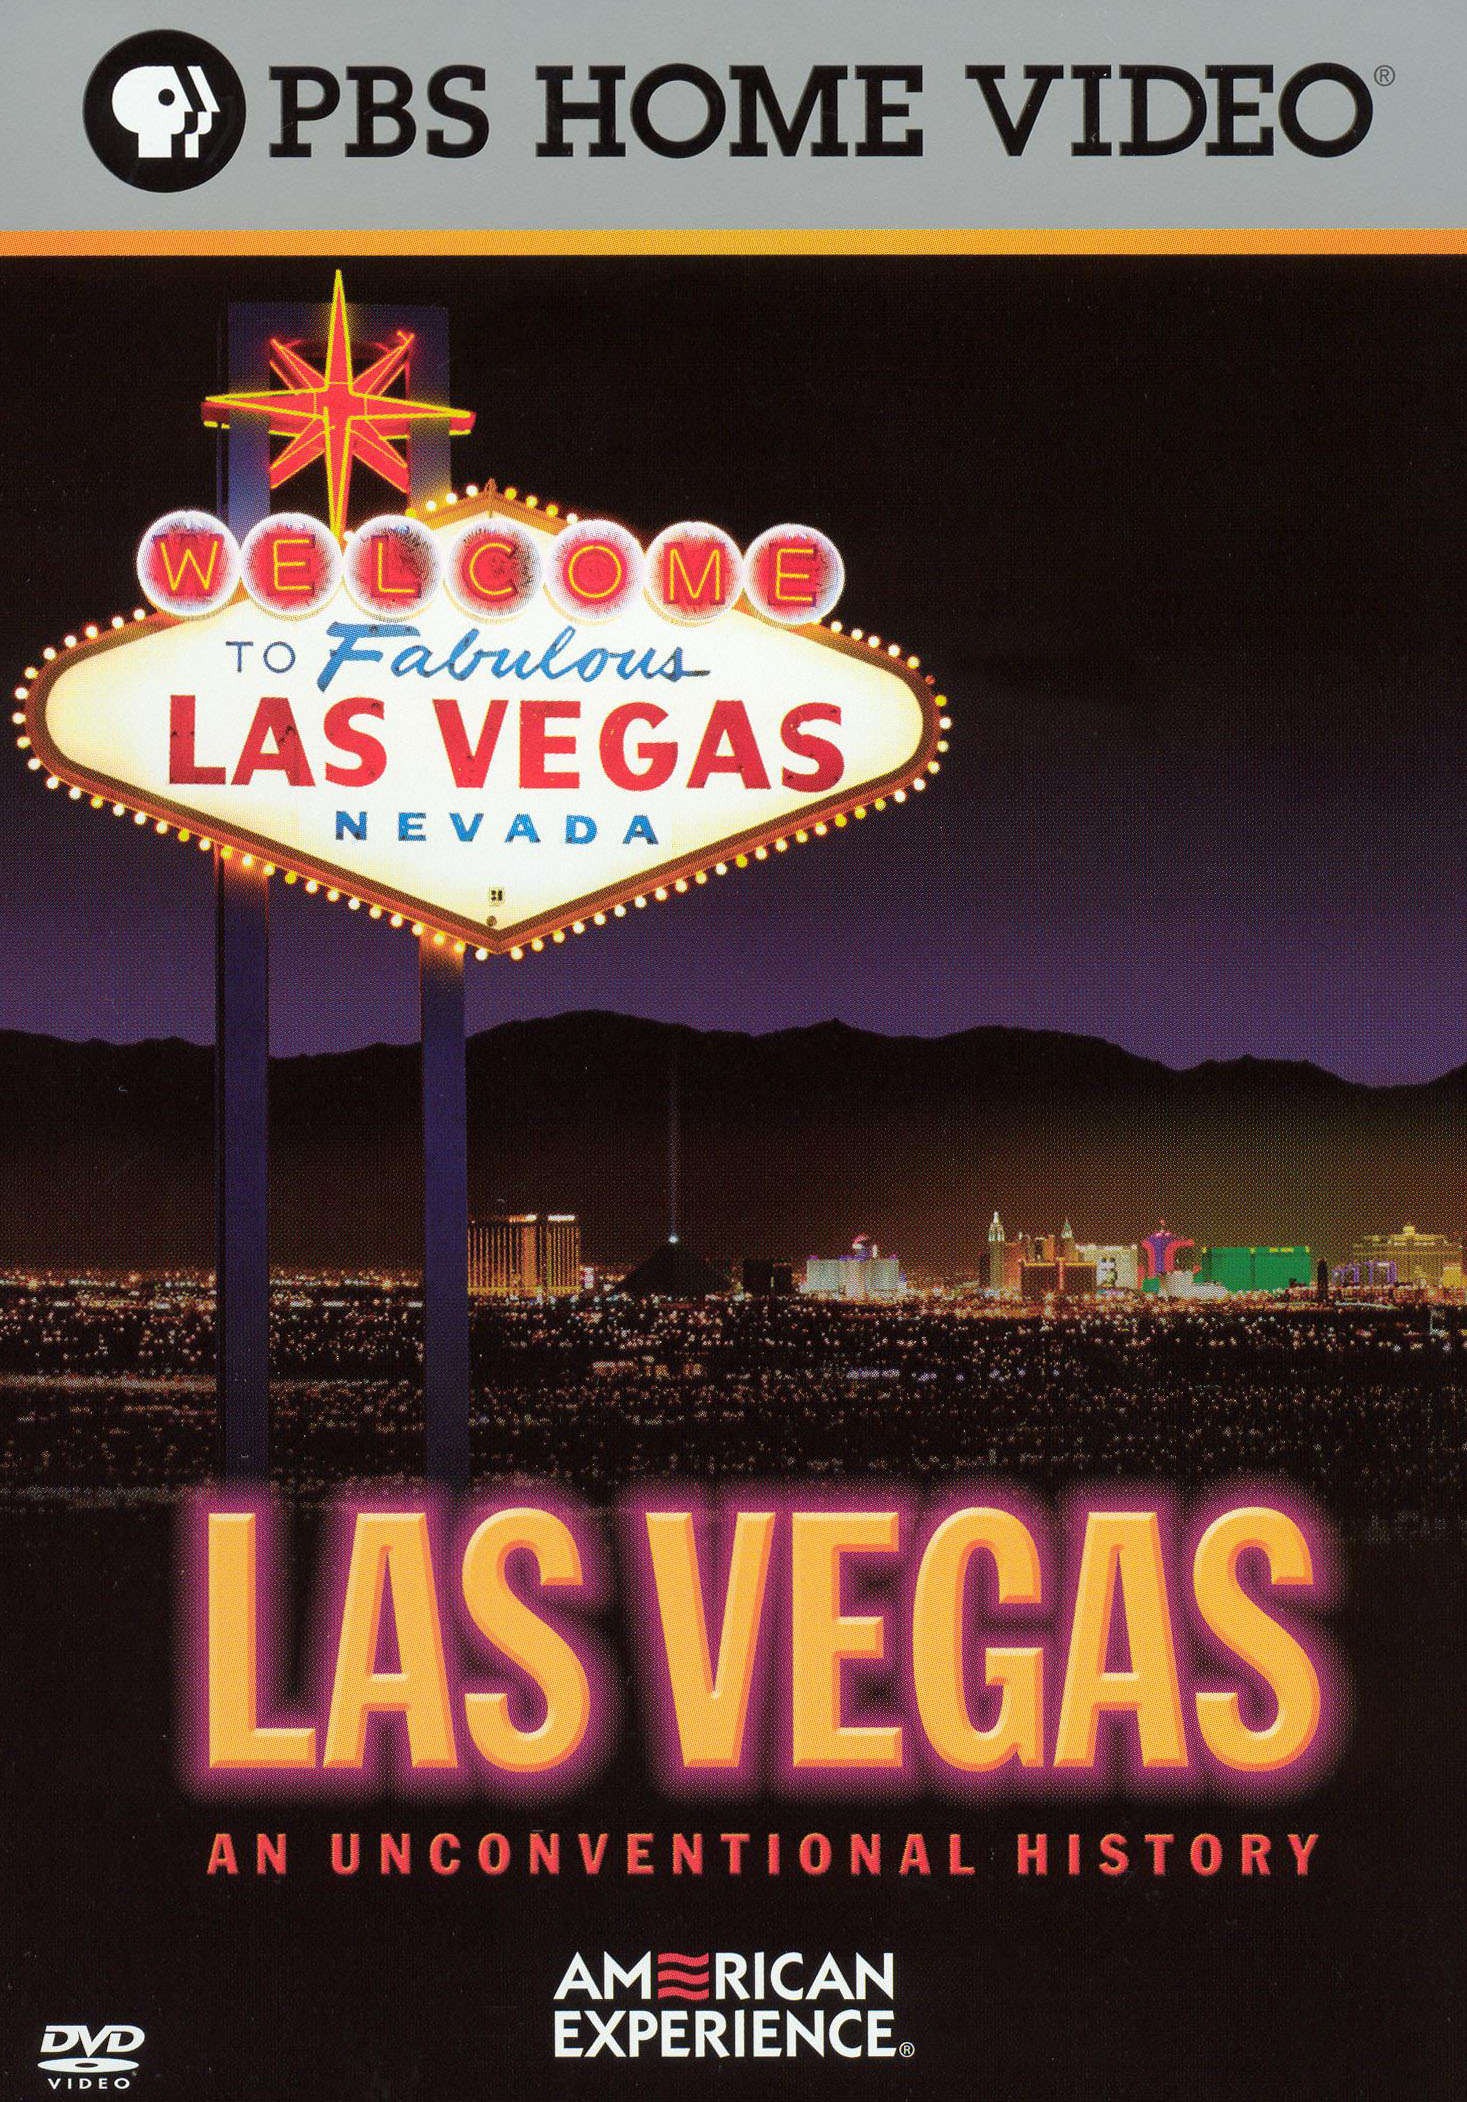 American Experience: Las Vegas - An Unconventional History